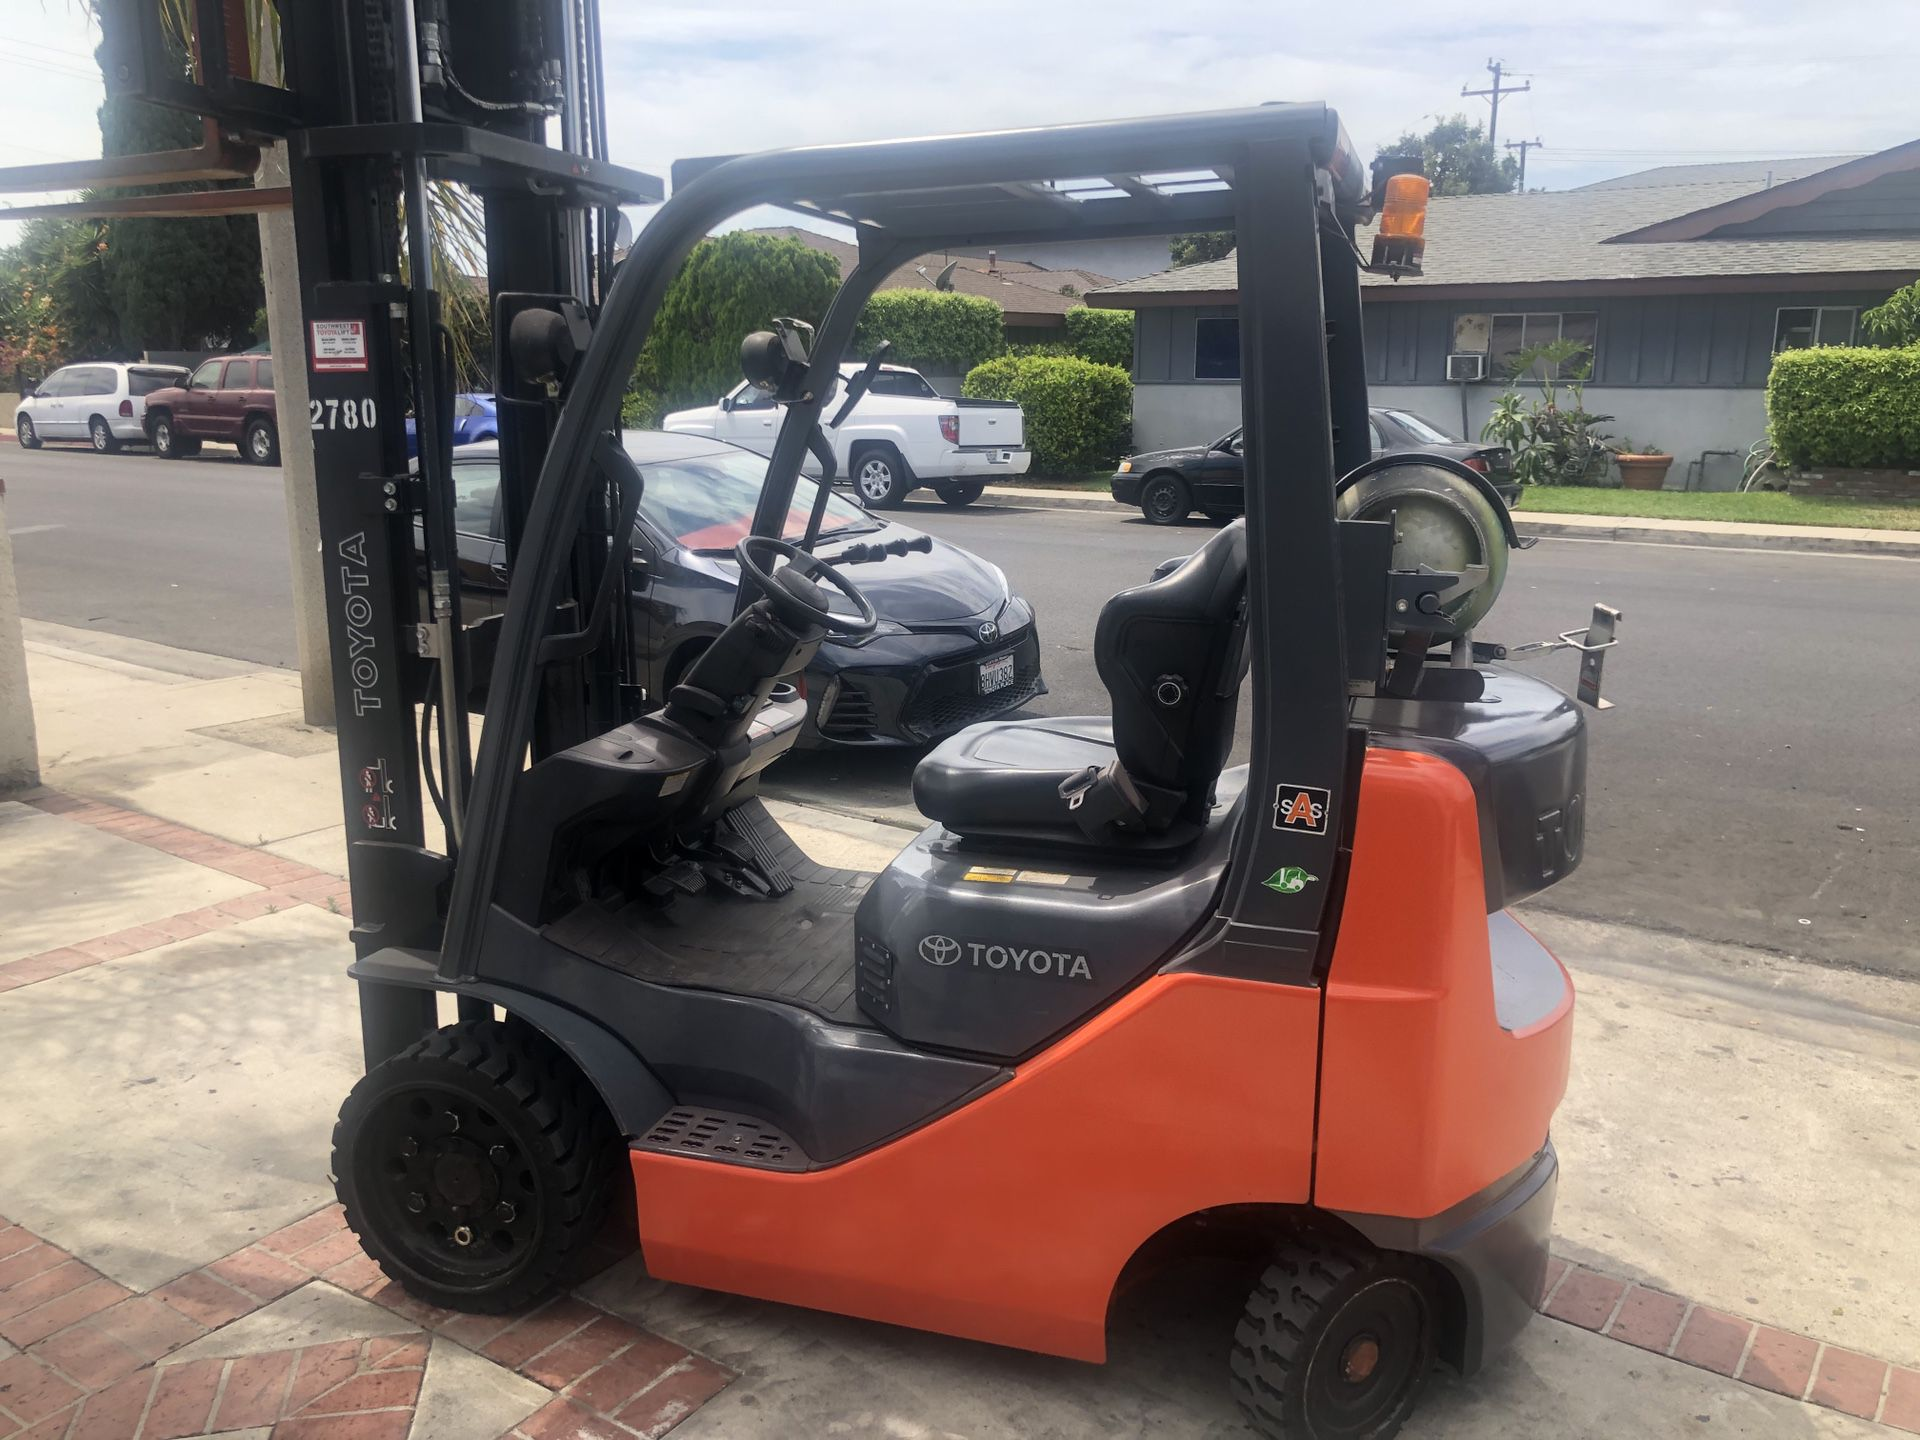 2012 Toyota forklift three stage mast side shift pneumatic tires 4000 lbs